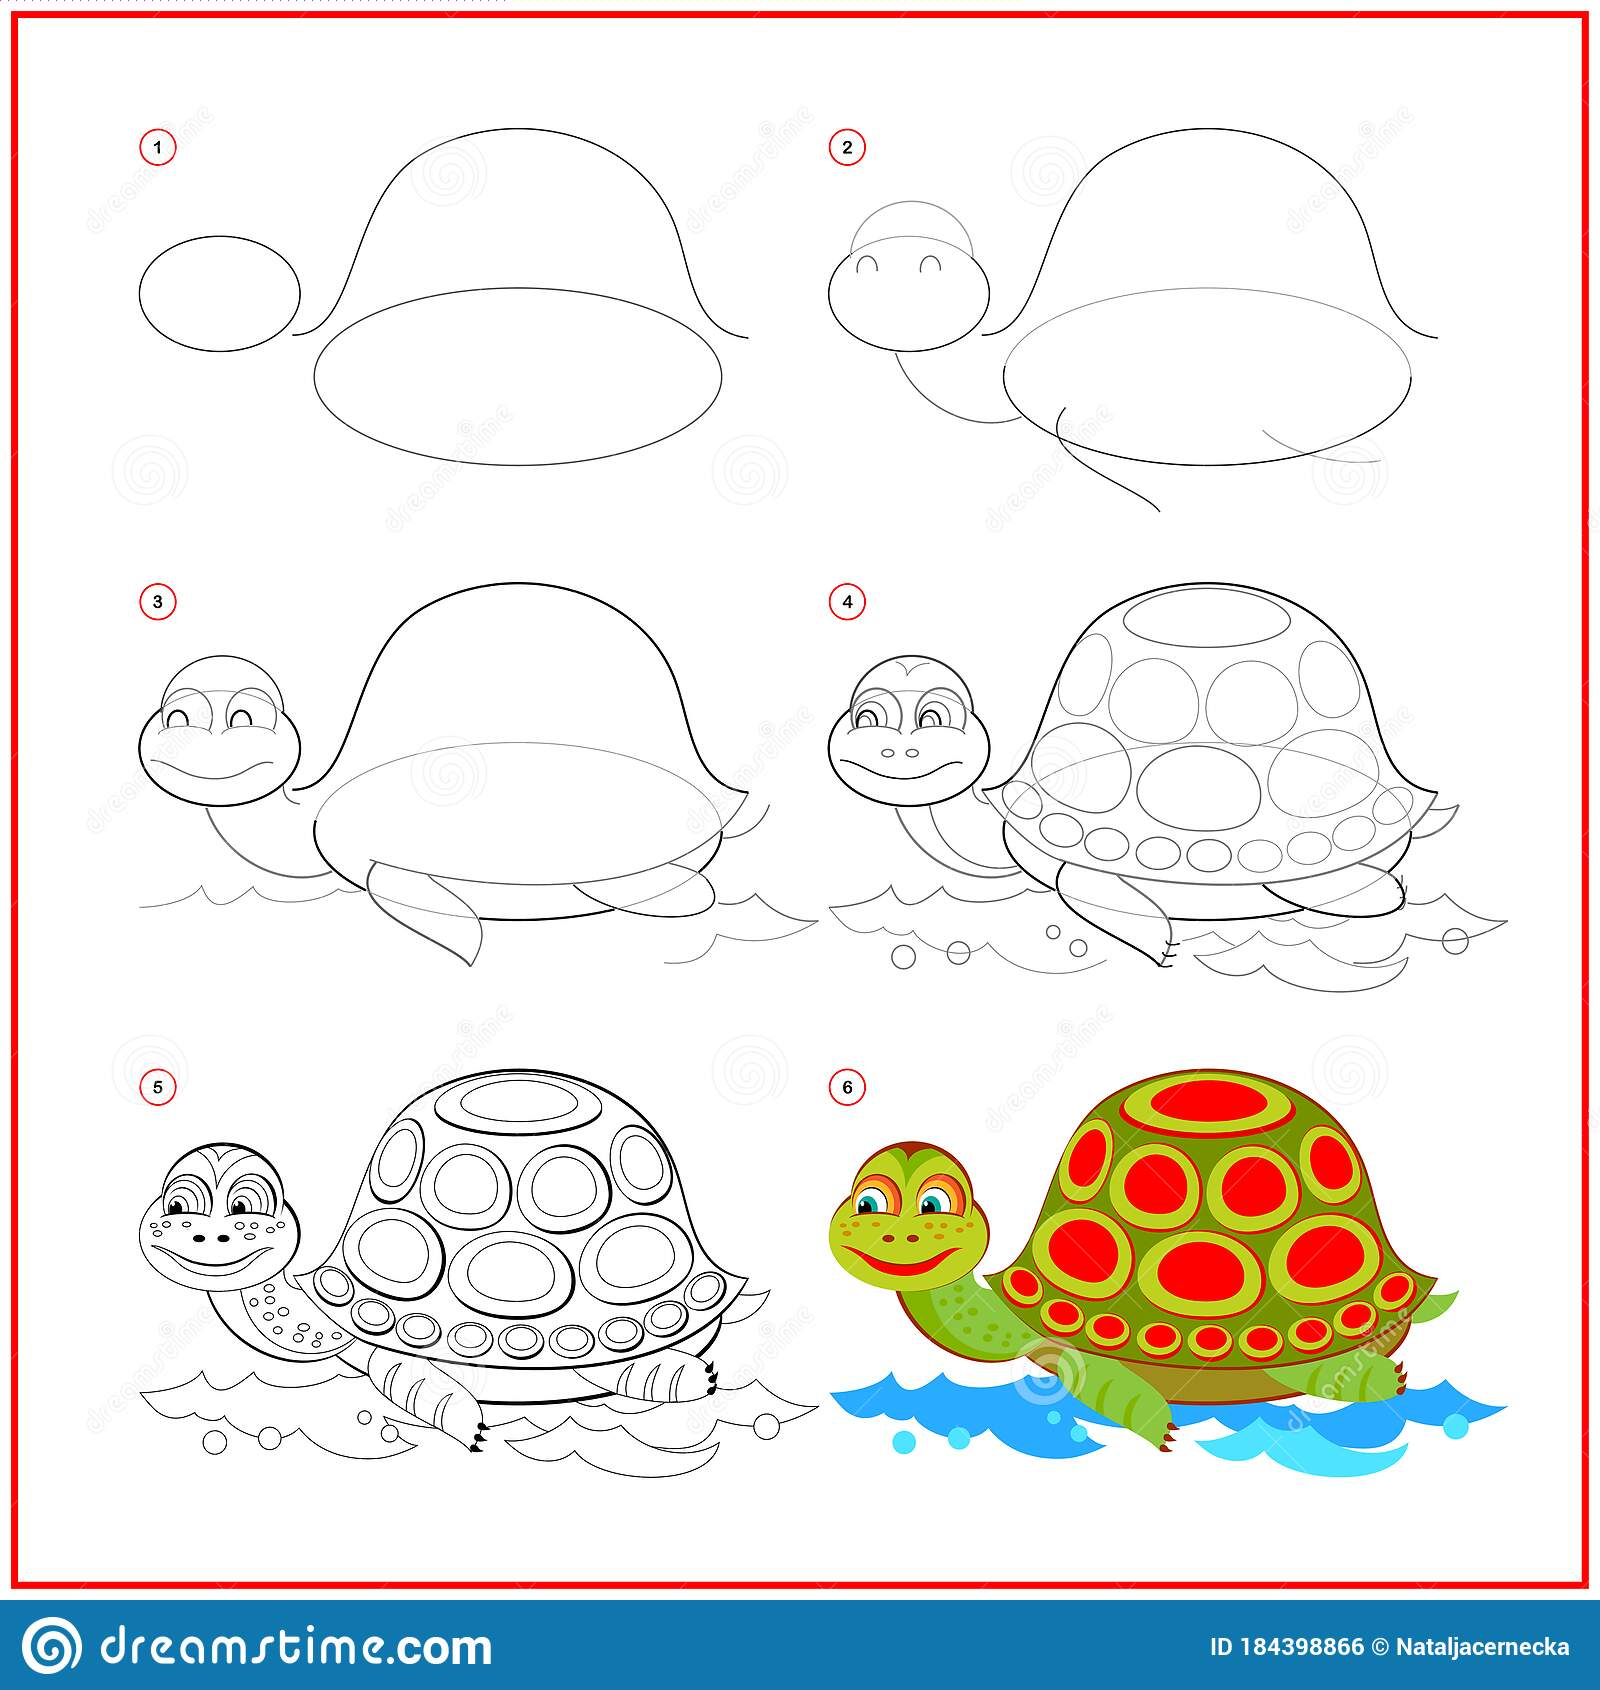 How To Draw Cute Toy Turtle Educational Page For Children